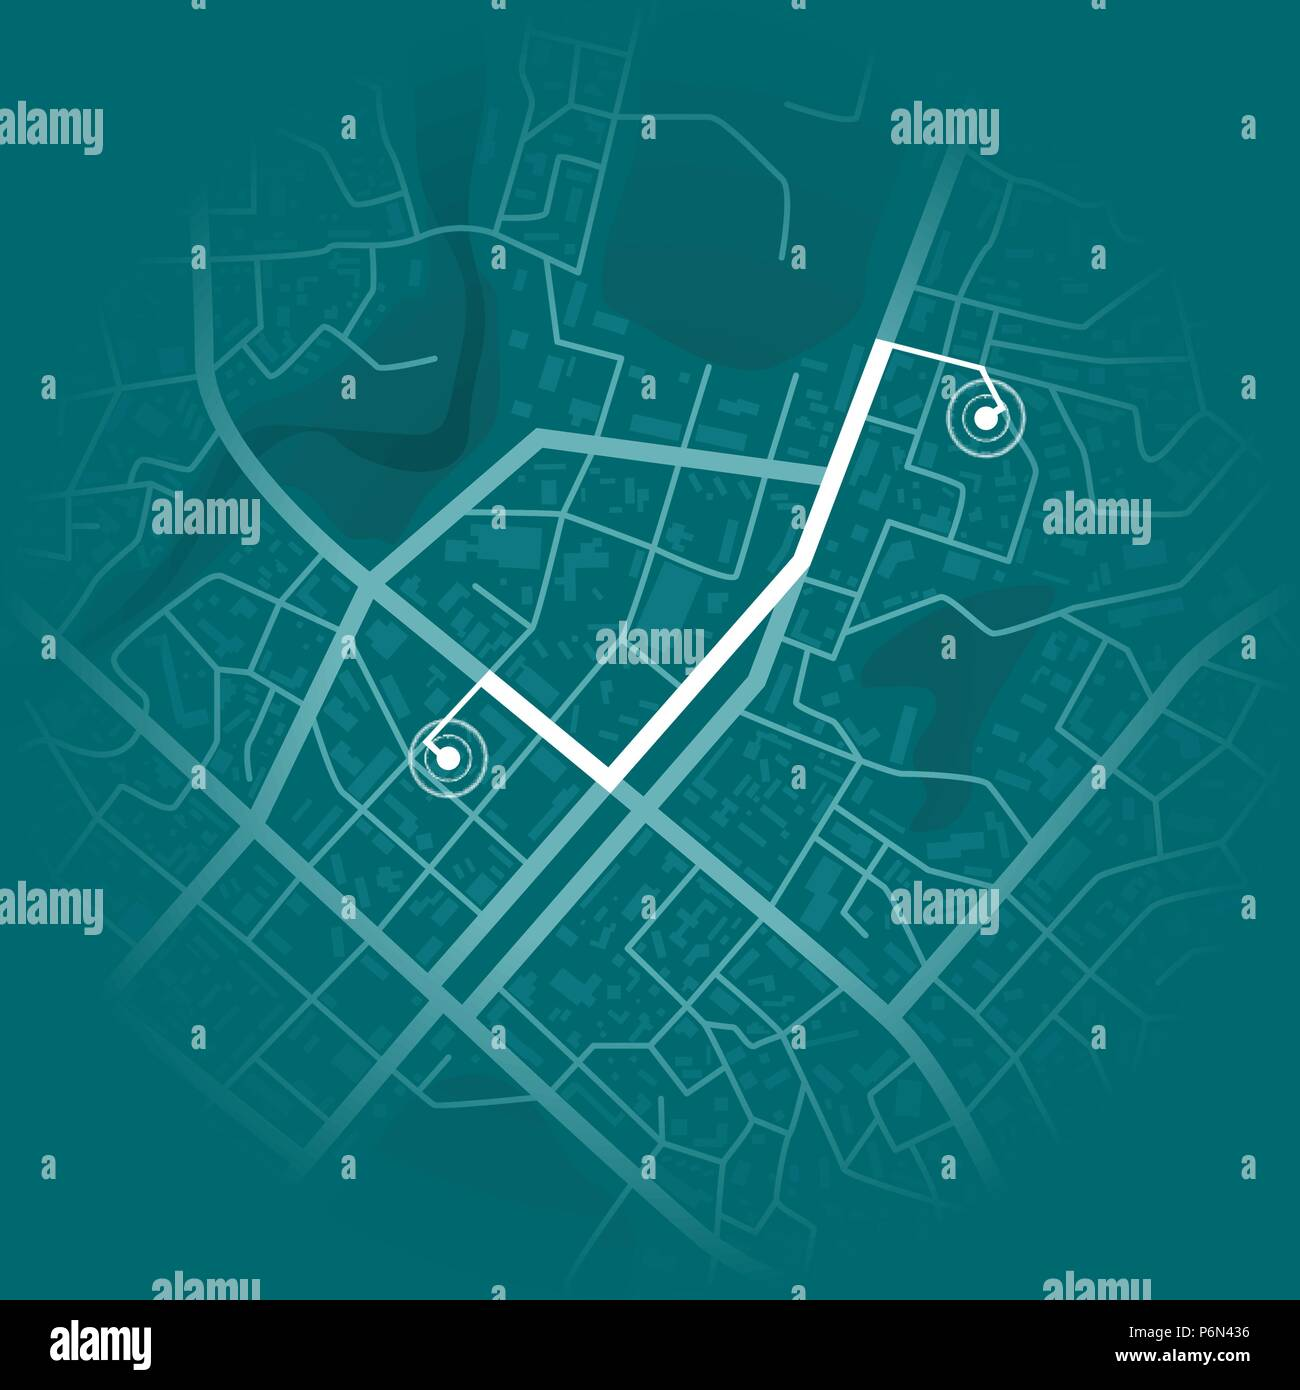 gps system concept. blue city map with route markers. vector